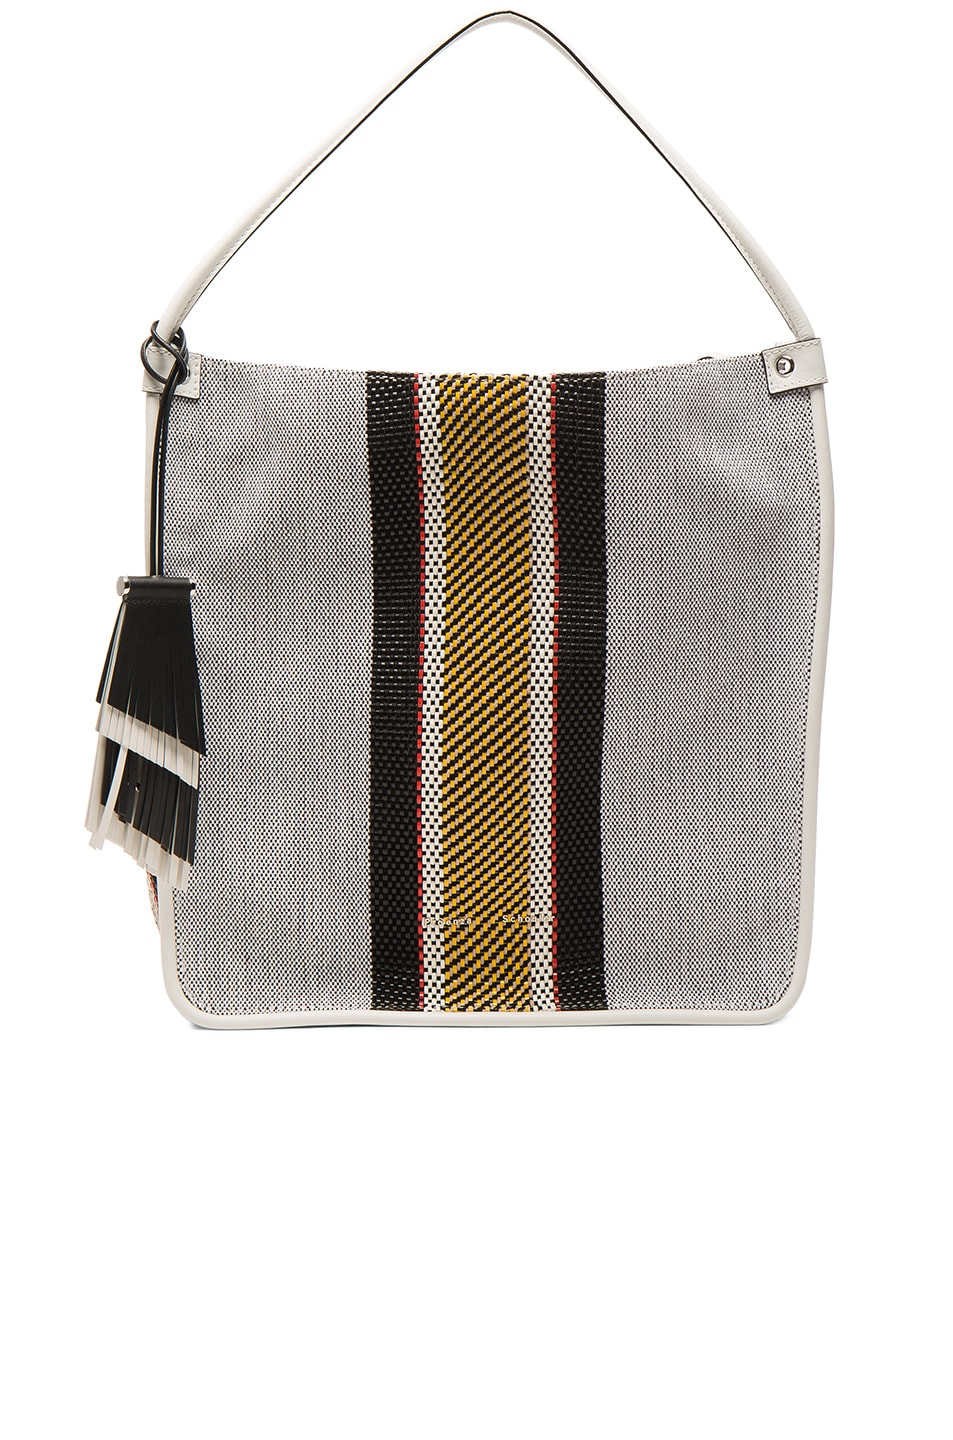 Image 1 of Proenza Schouler Medium Tote Woven Stripes in Optic White Mix